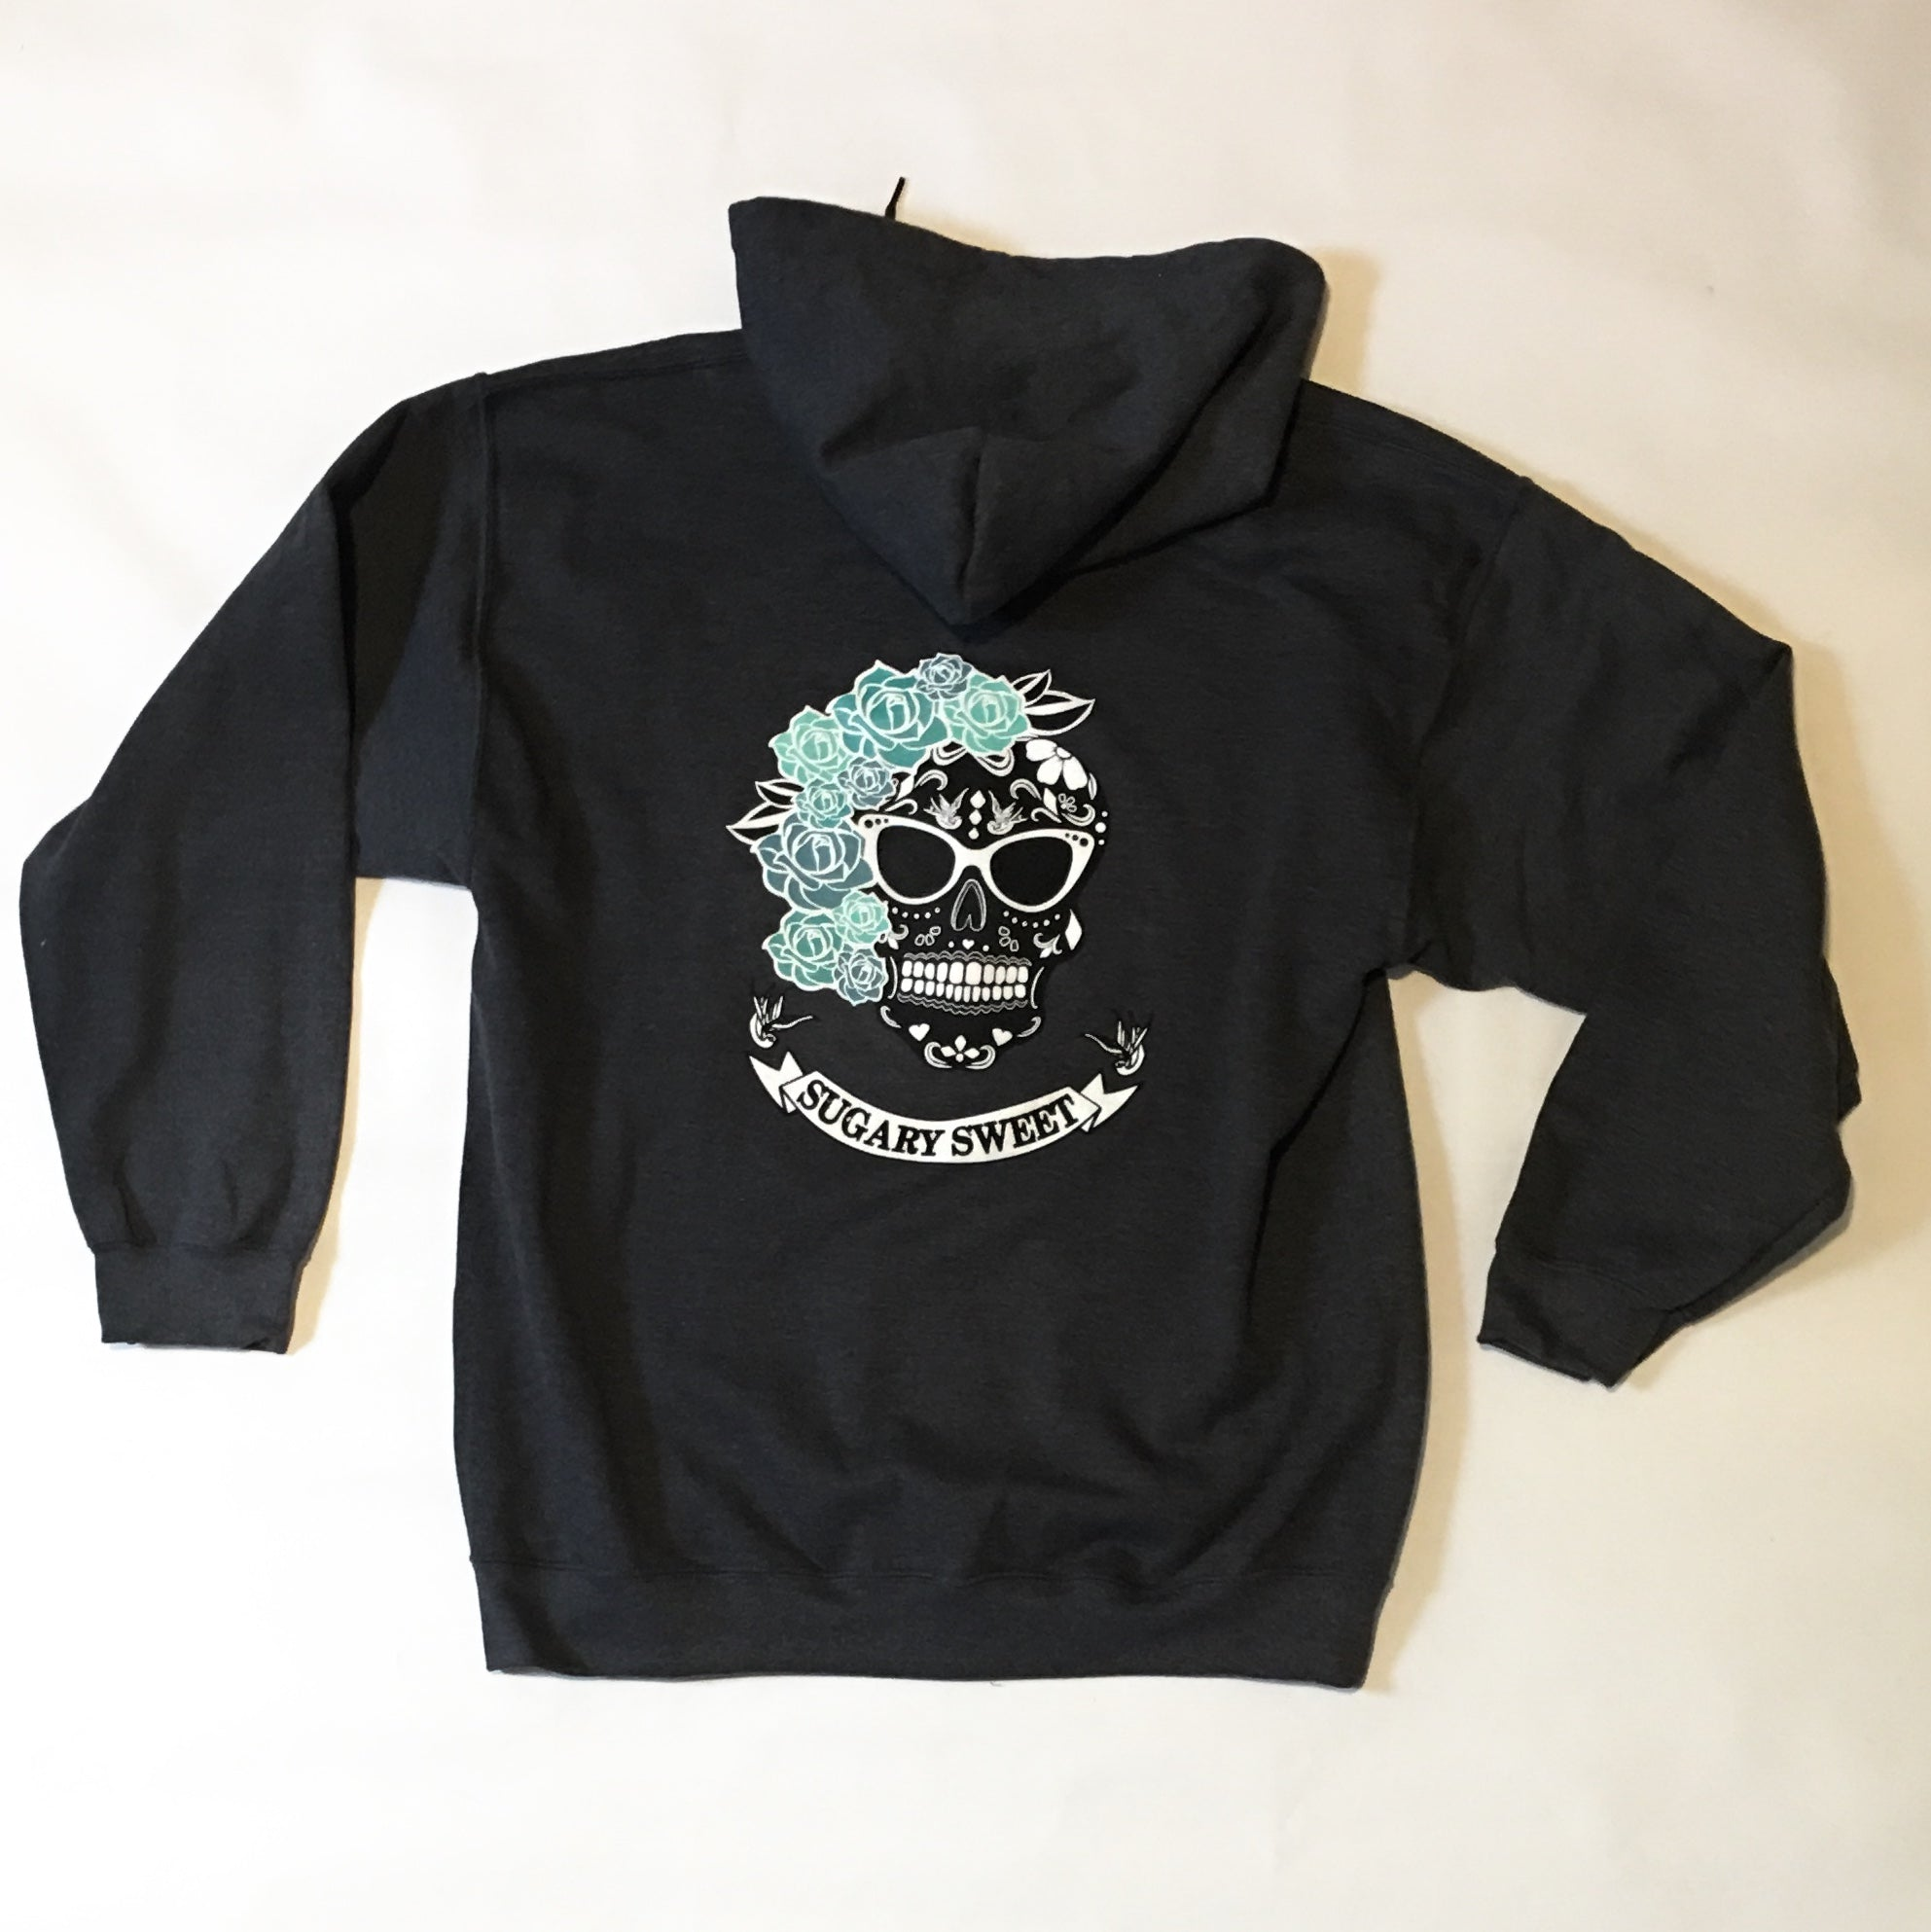 The Hop Unisex Sugary Sweet Hoodie